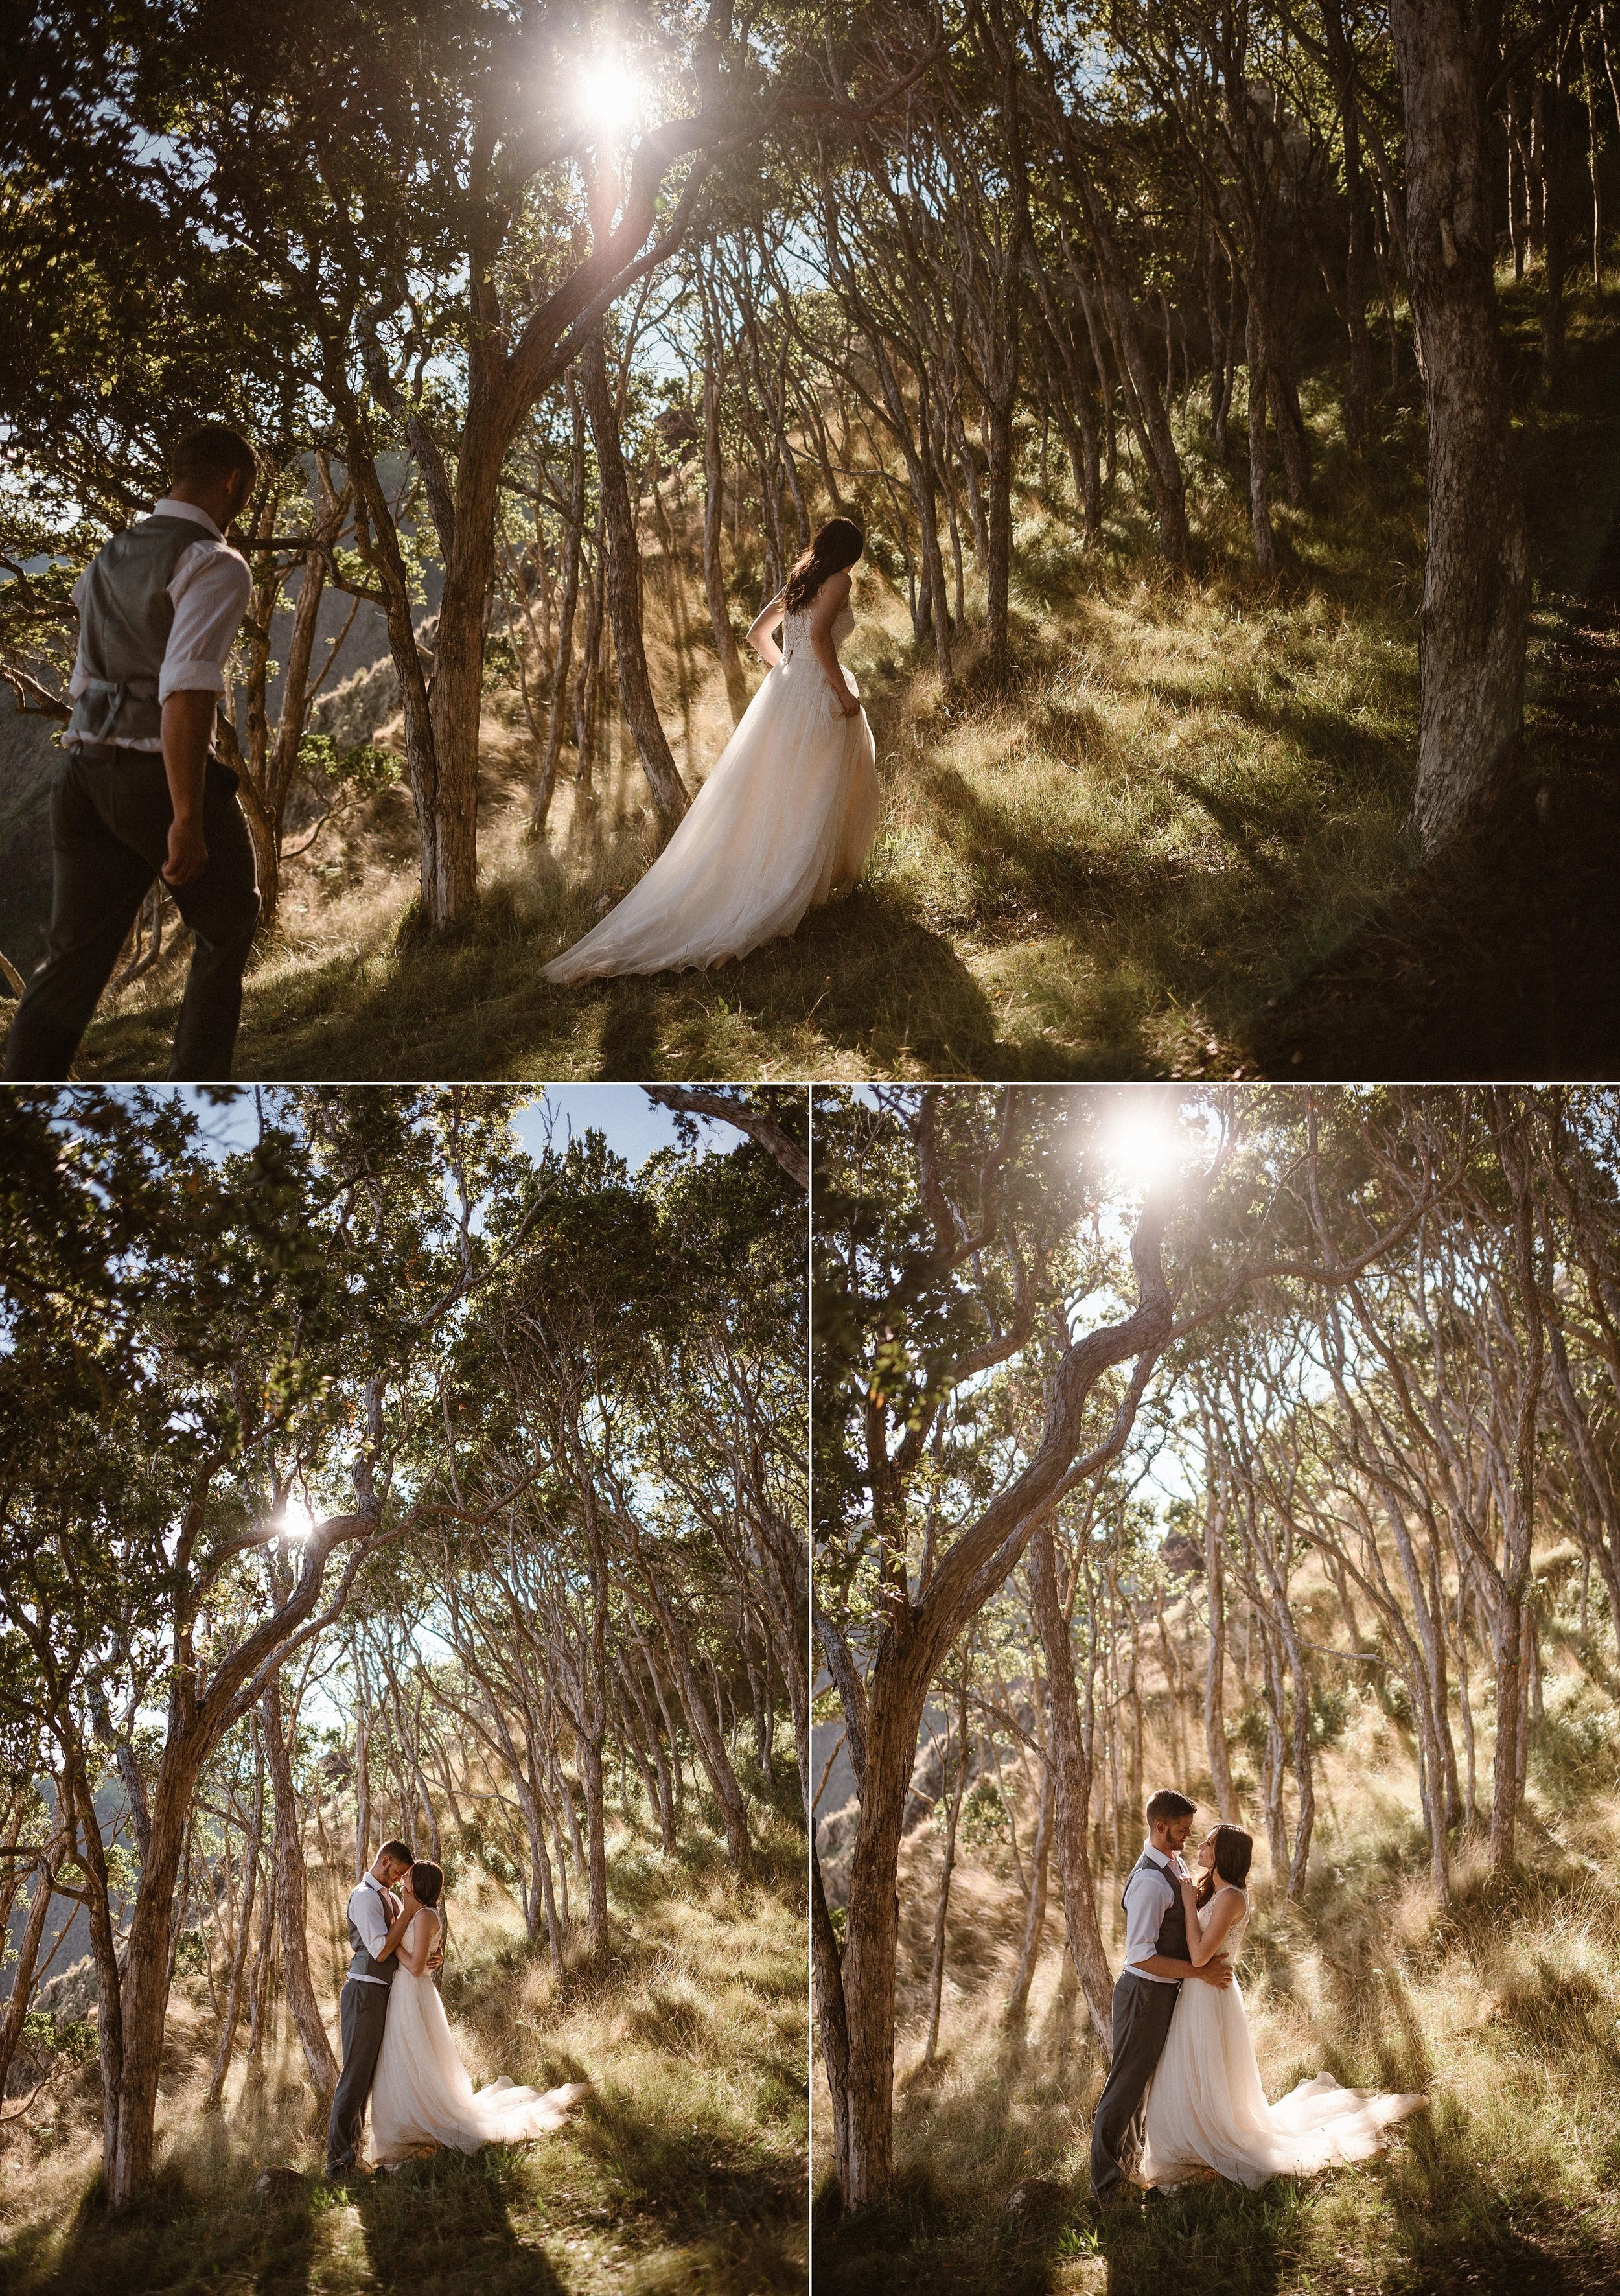 Taking a detour off the beaten path Kourtney and Chris shared an intimate moment among the spindly trees in Kokee State Park where they had just privately eloped high above the Kauai beaches, getting to see a part of Hawaii most people don't even know exists. Photos of this romantic adventure around Kalaulau Valley by traveling elopement photographer Maddie Mae.